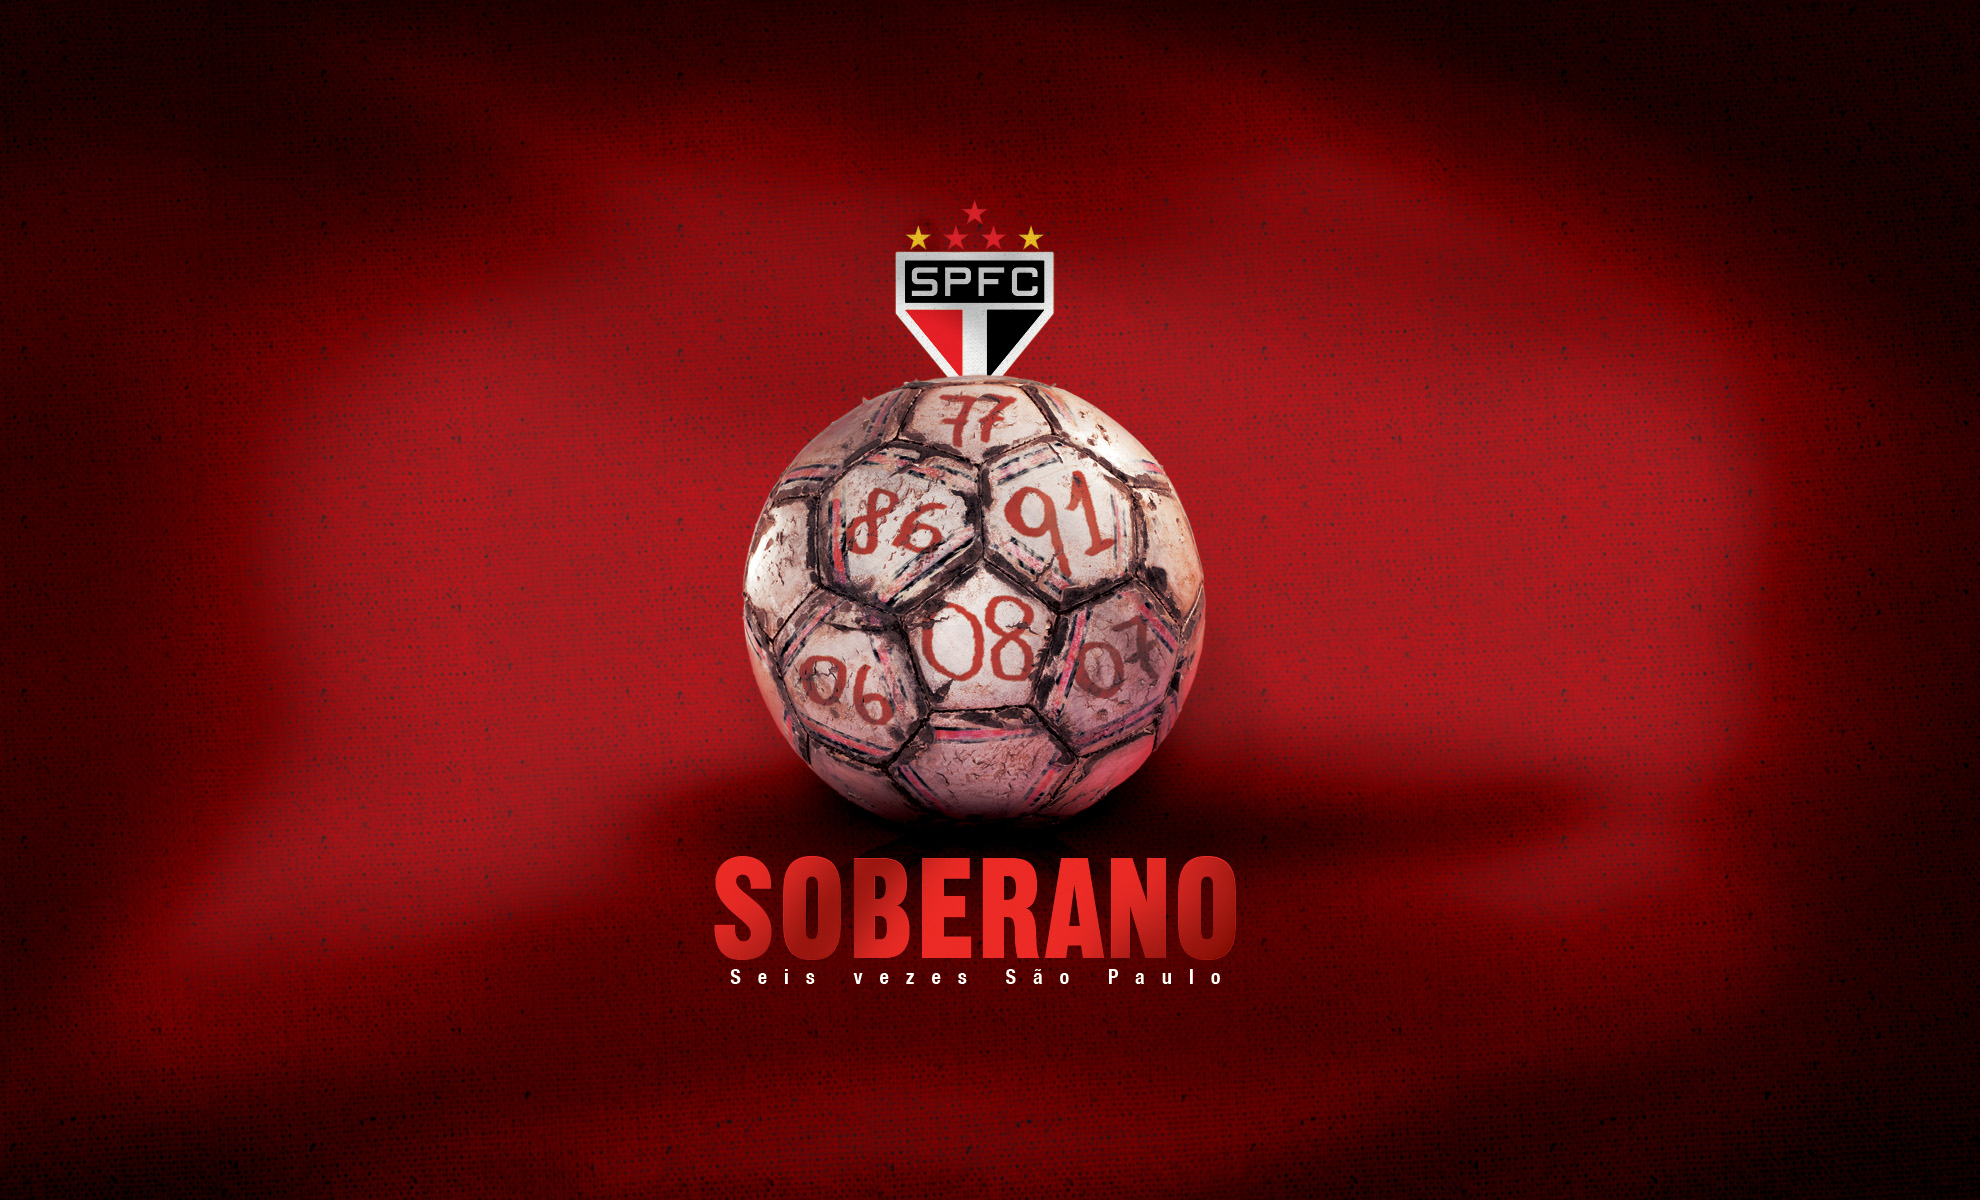 Free Download Sao Paulo Fc Wallpaper 17 1980 X 1200 Stmednet